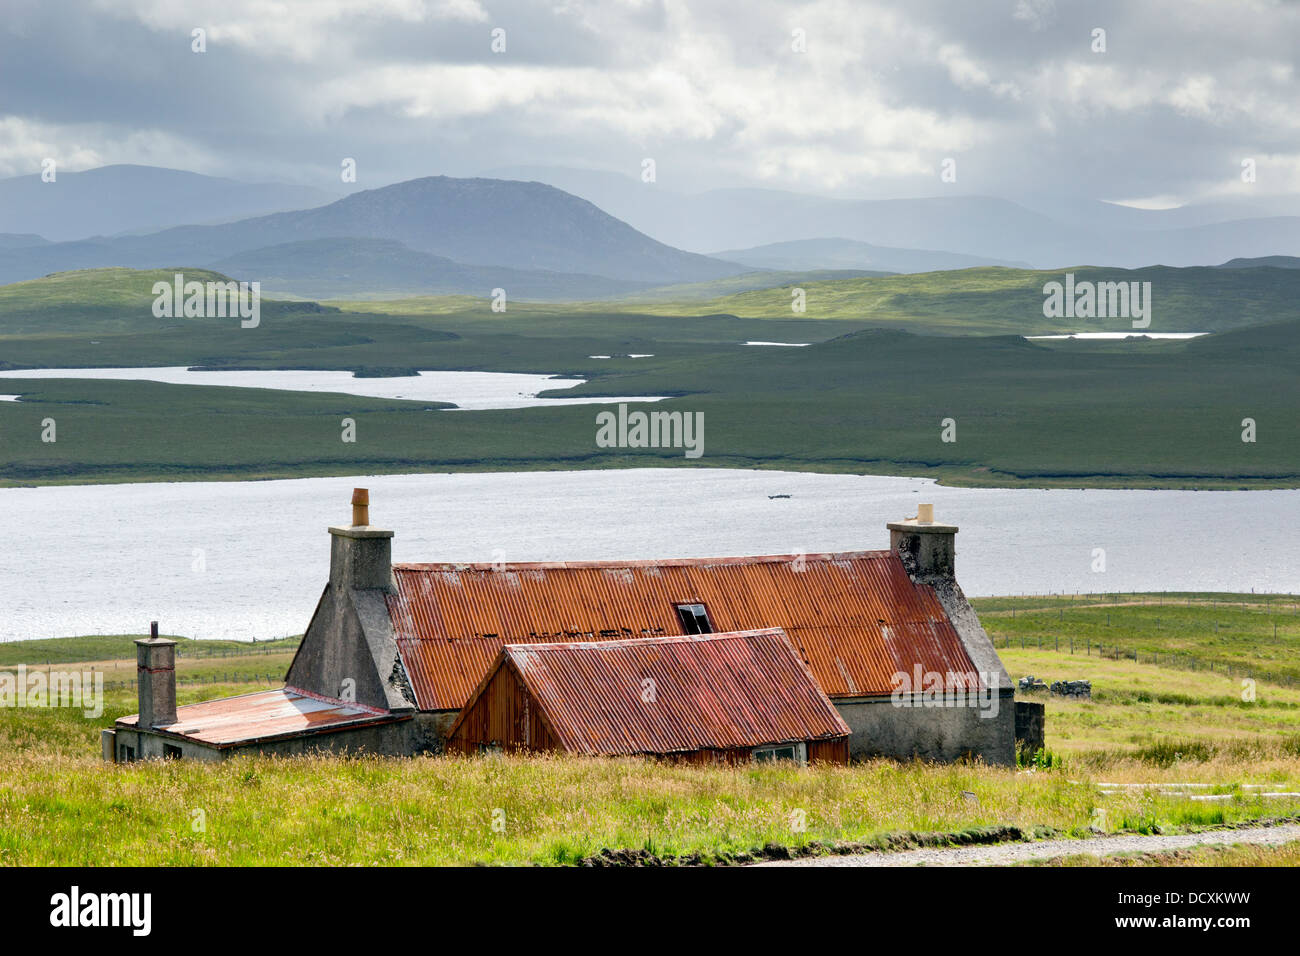 Old Rustic Barn at Achmore Isle of Lewis - Stock Image